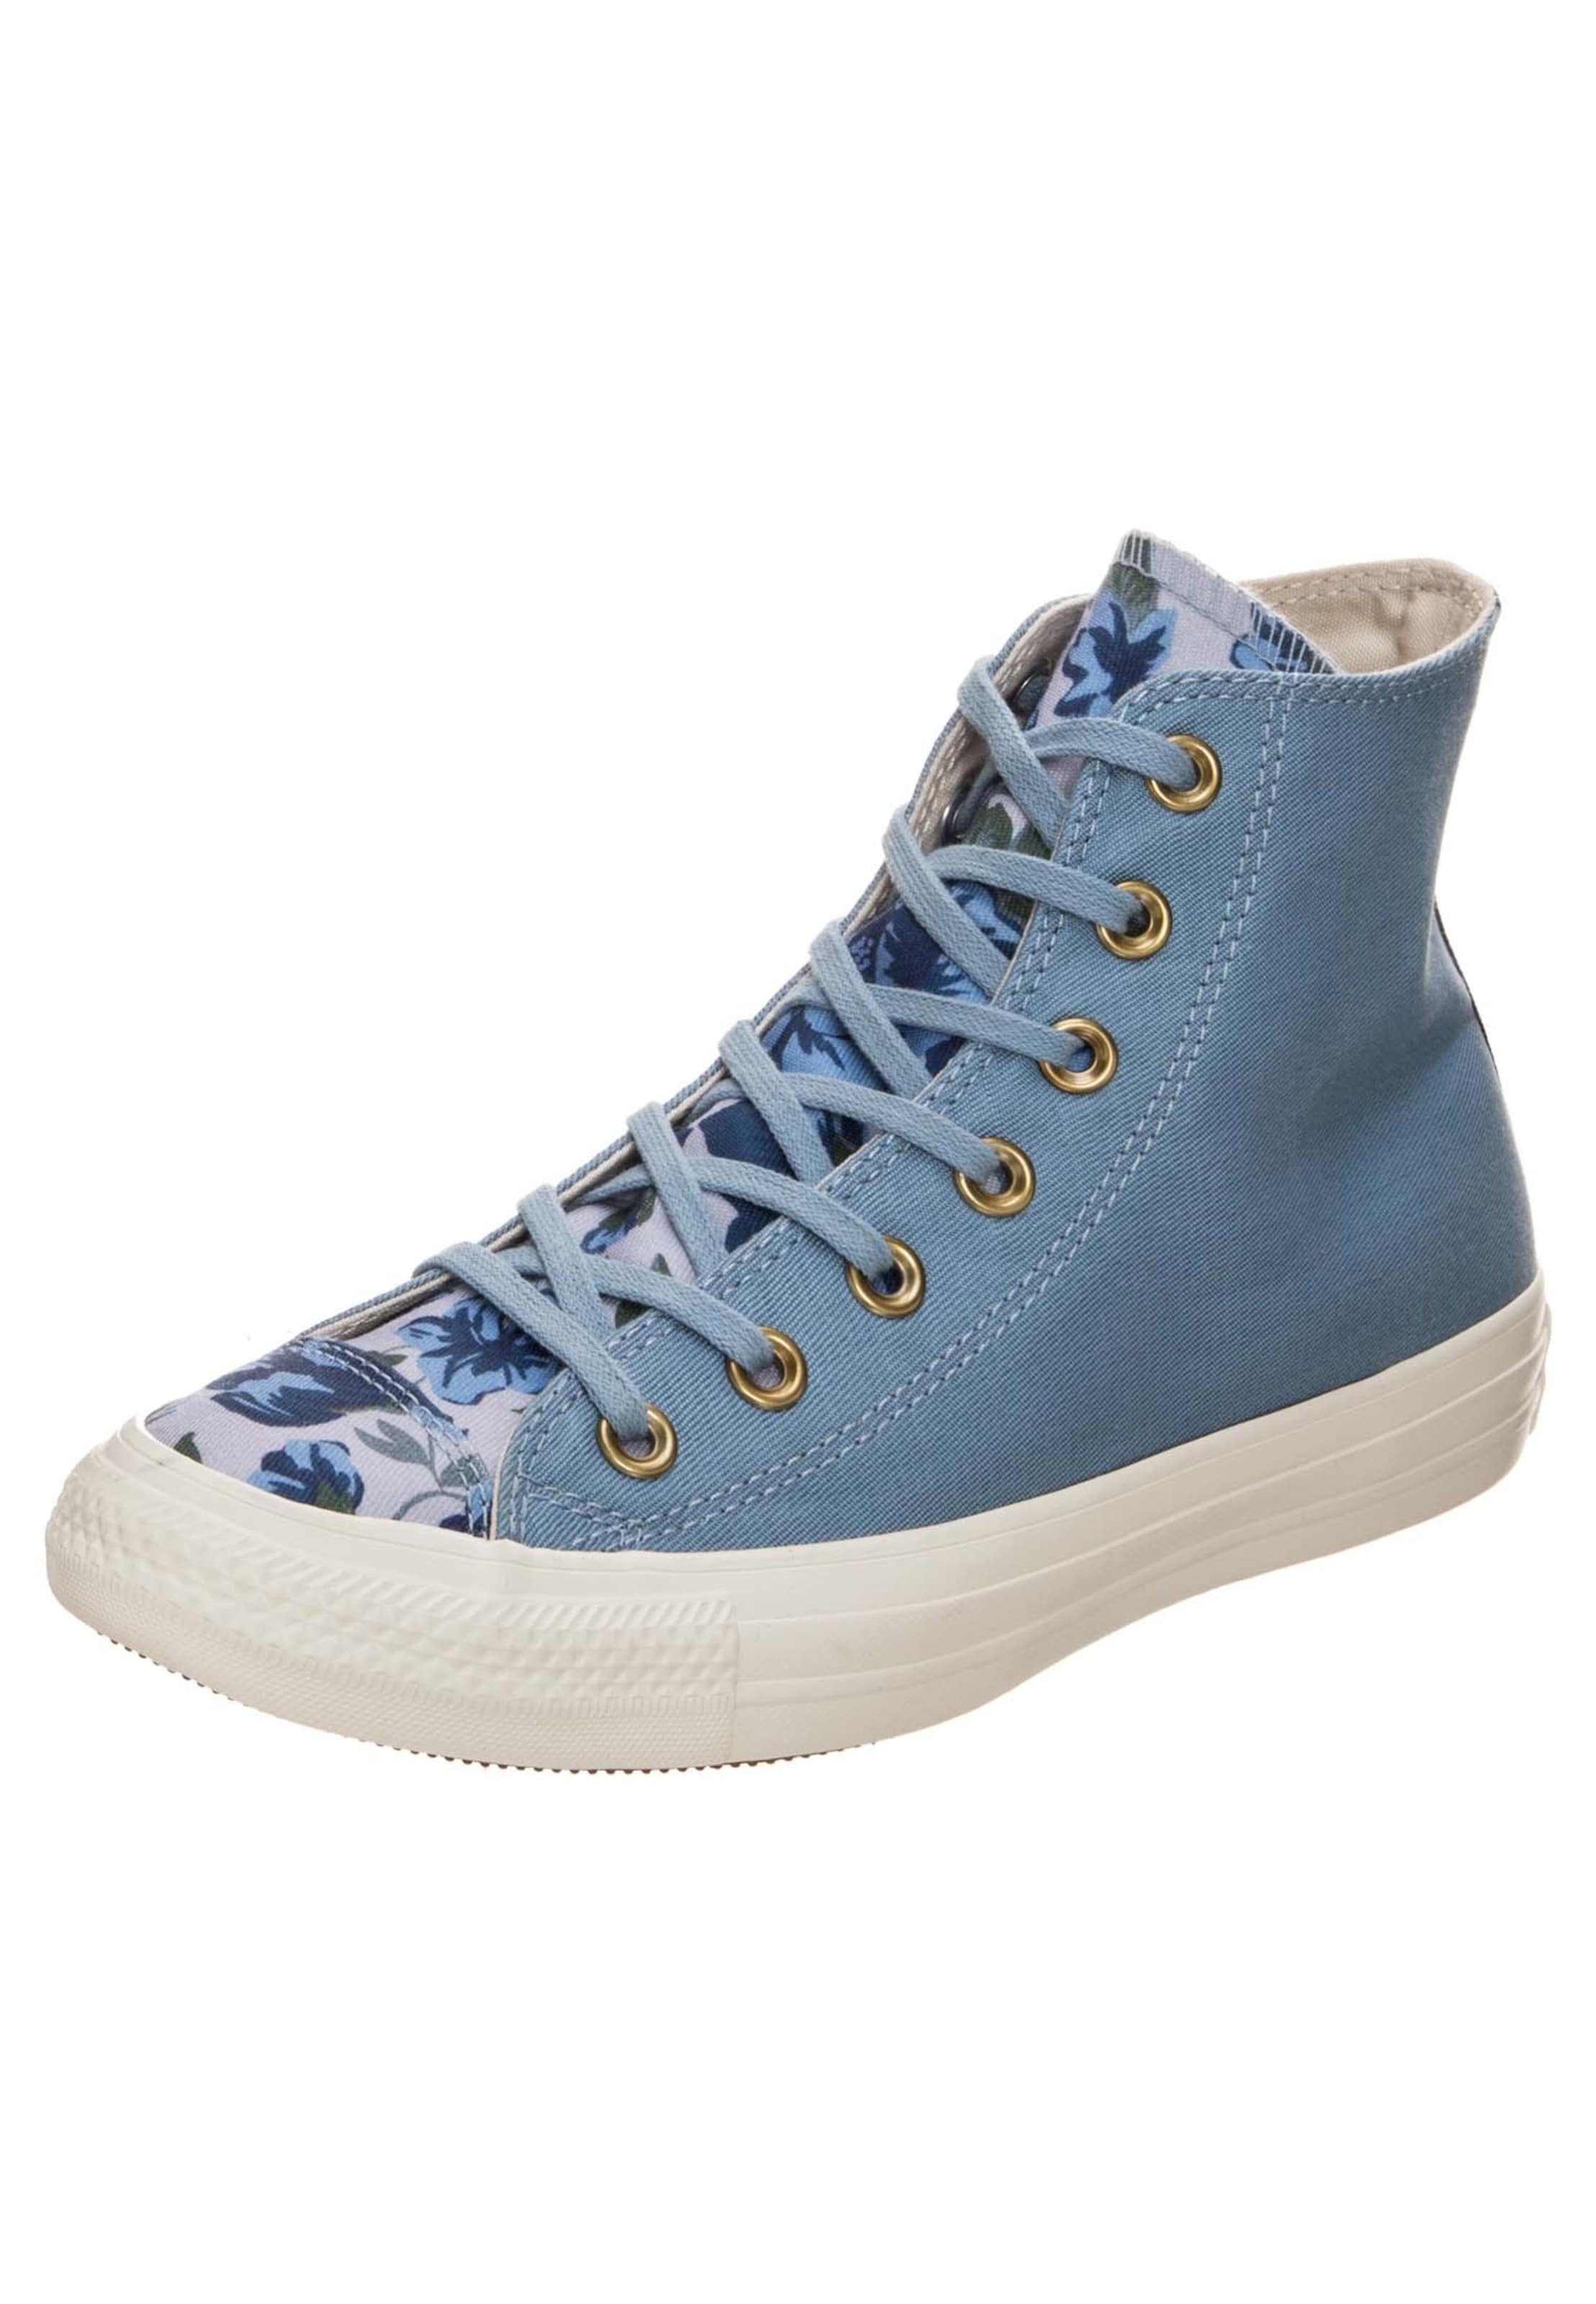 CONVERSE High Sneaker  Chuck Taylor All Star Parkway